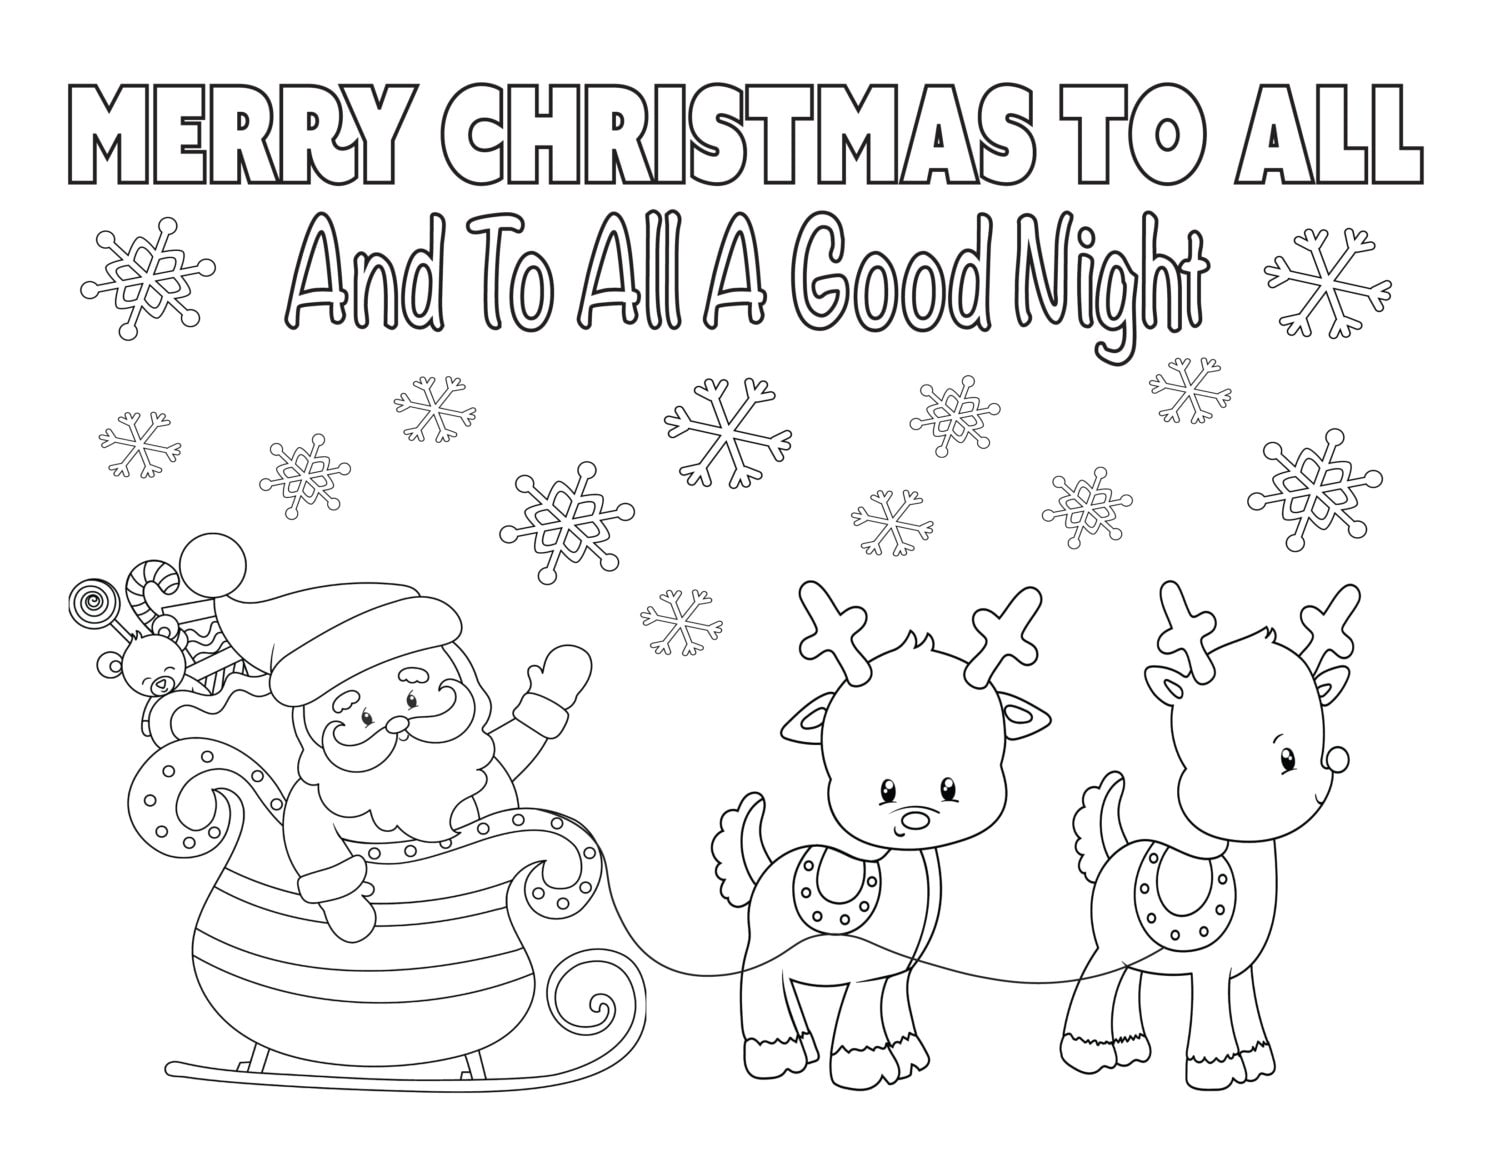 Kids christmas coloring and activity sheets - Christmas Coloring Page 8 5x11 Instant Download Printable Santa Coloring Sheet Holiday Coloring Kid S Christmas Activity Reindeer